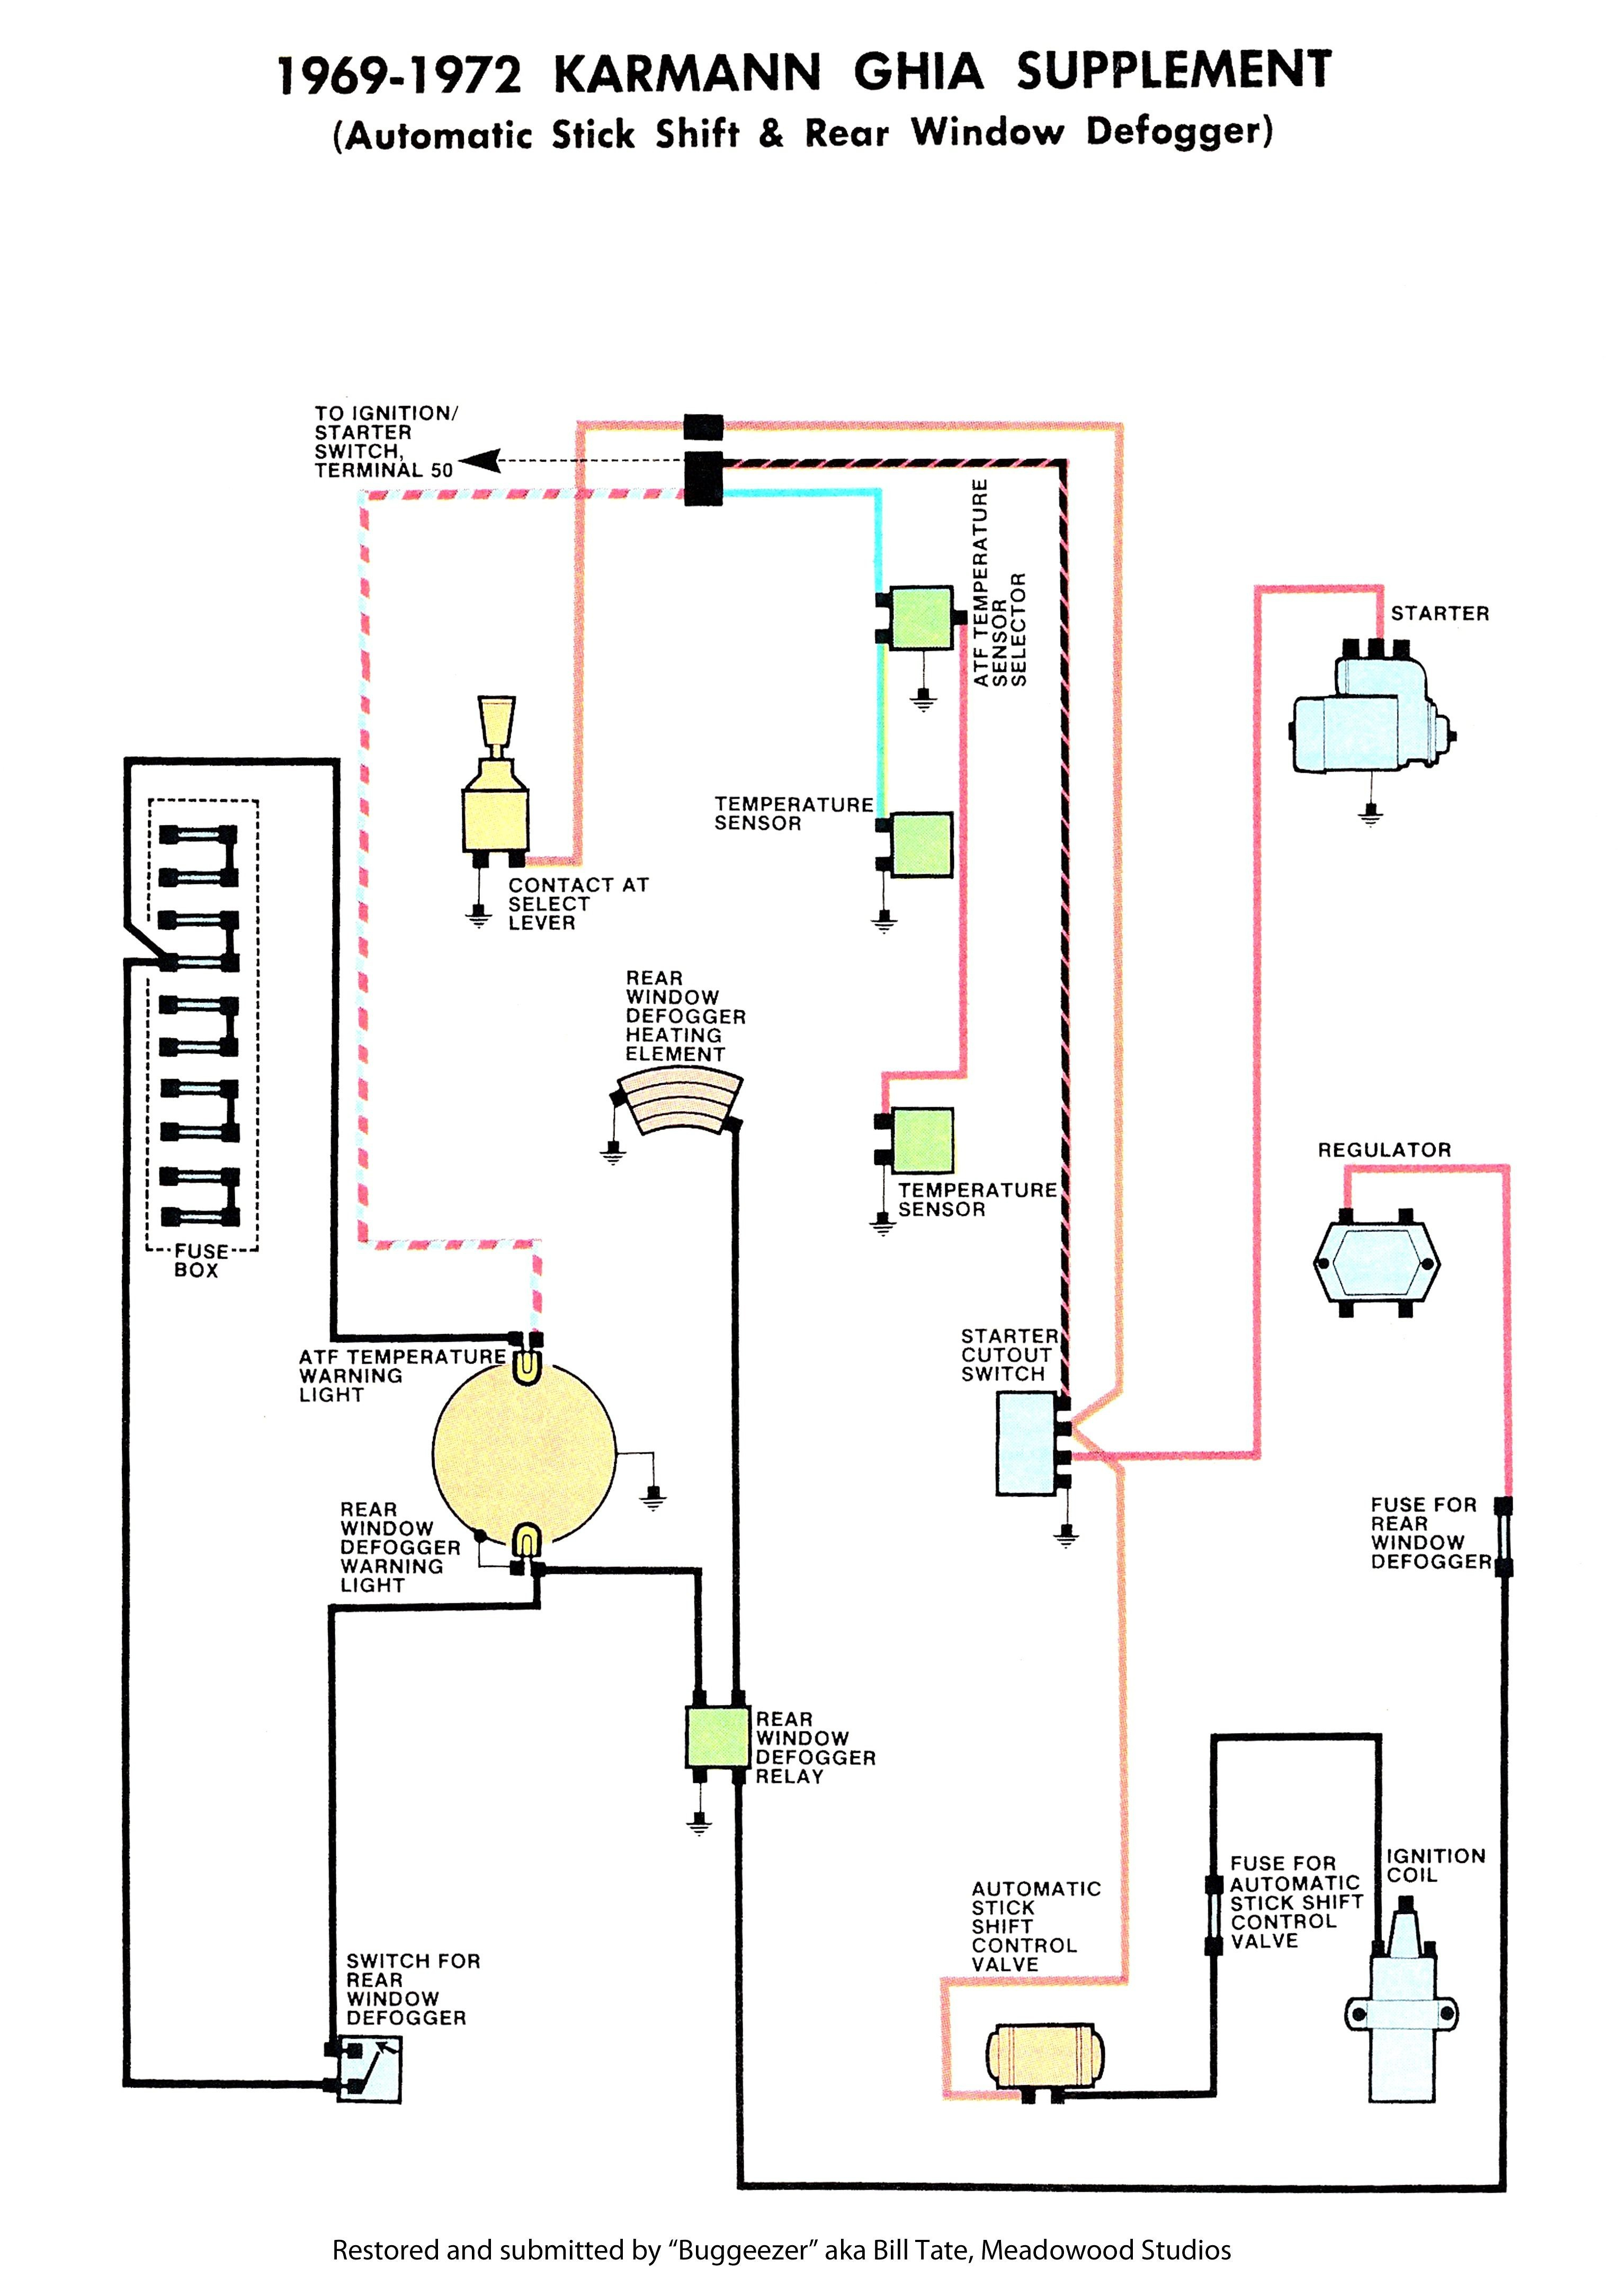 honeywell limit switch wiring diagram Collection-Gallery of Awesome Honeywell Fan Limit Switch Wiring Diagram 2-t